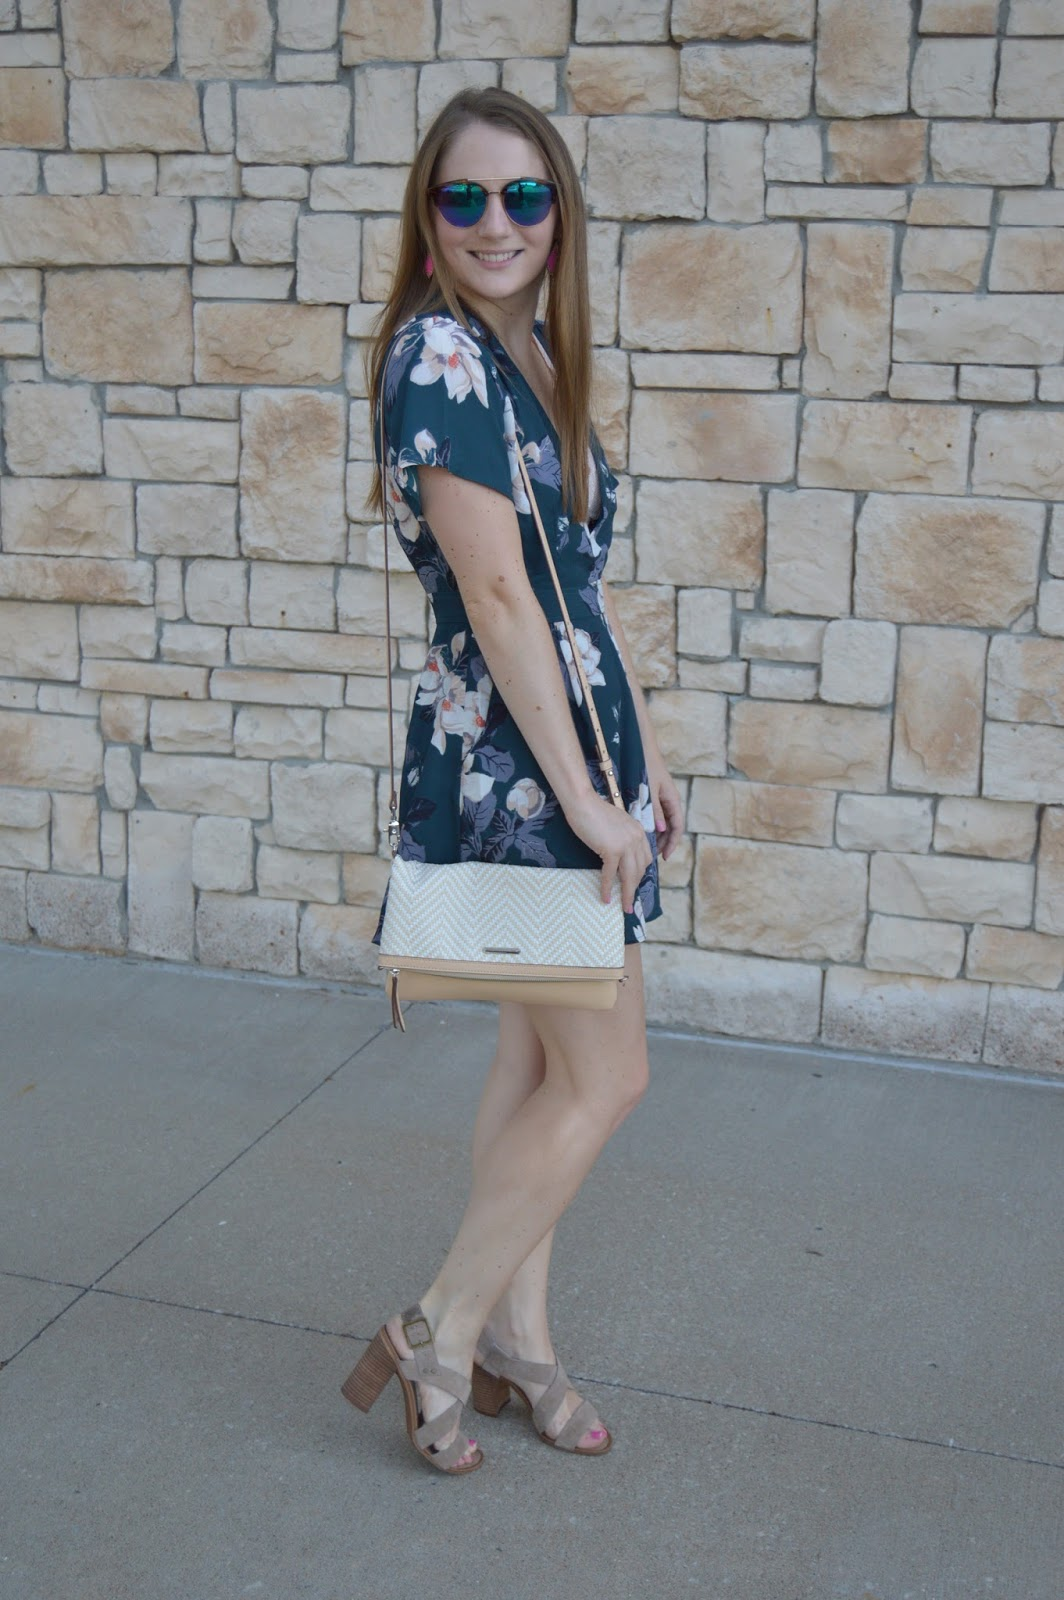 nordstrom anniversary sale haul | rompers with block heels | summer lookbook | cute outfit ideas for summer | summer outfit ideas | summer ootw | july ootw | a memory of us | floral print rompers | rompers from the nordstrom anniversary sale haul | kansas city fashion blog |